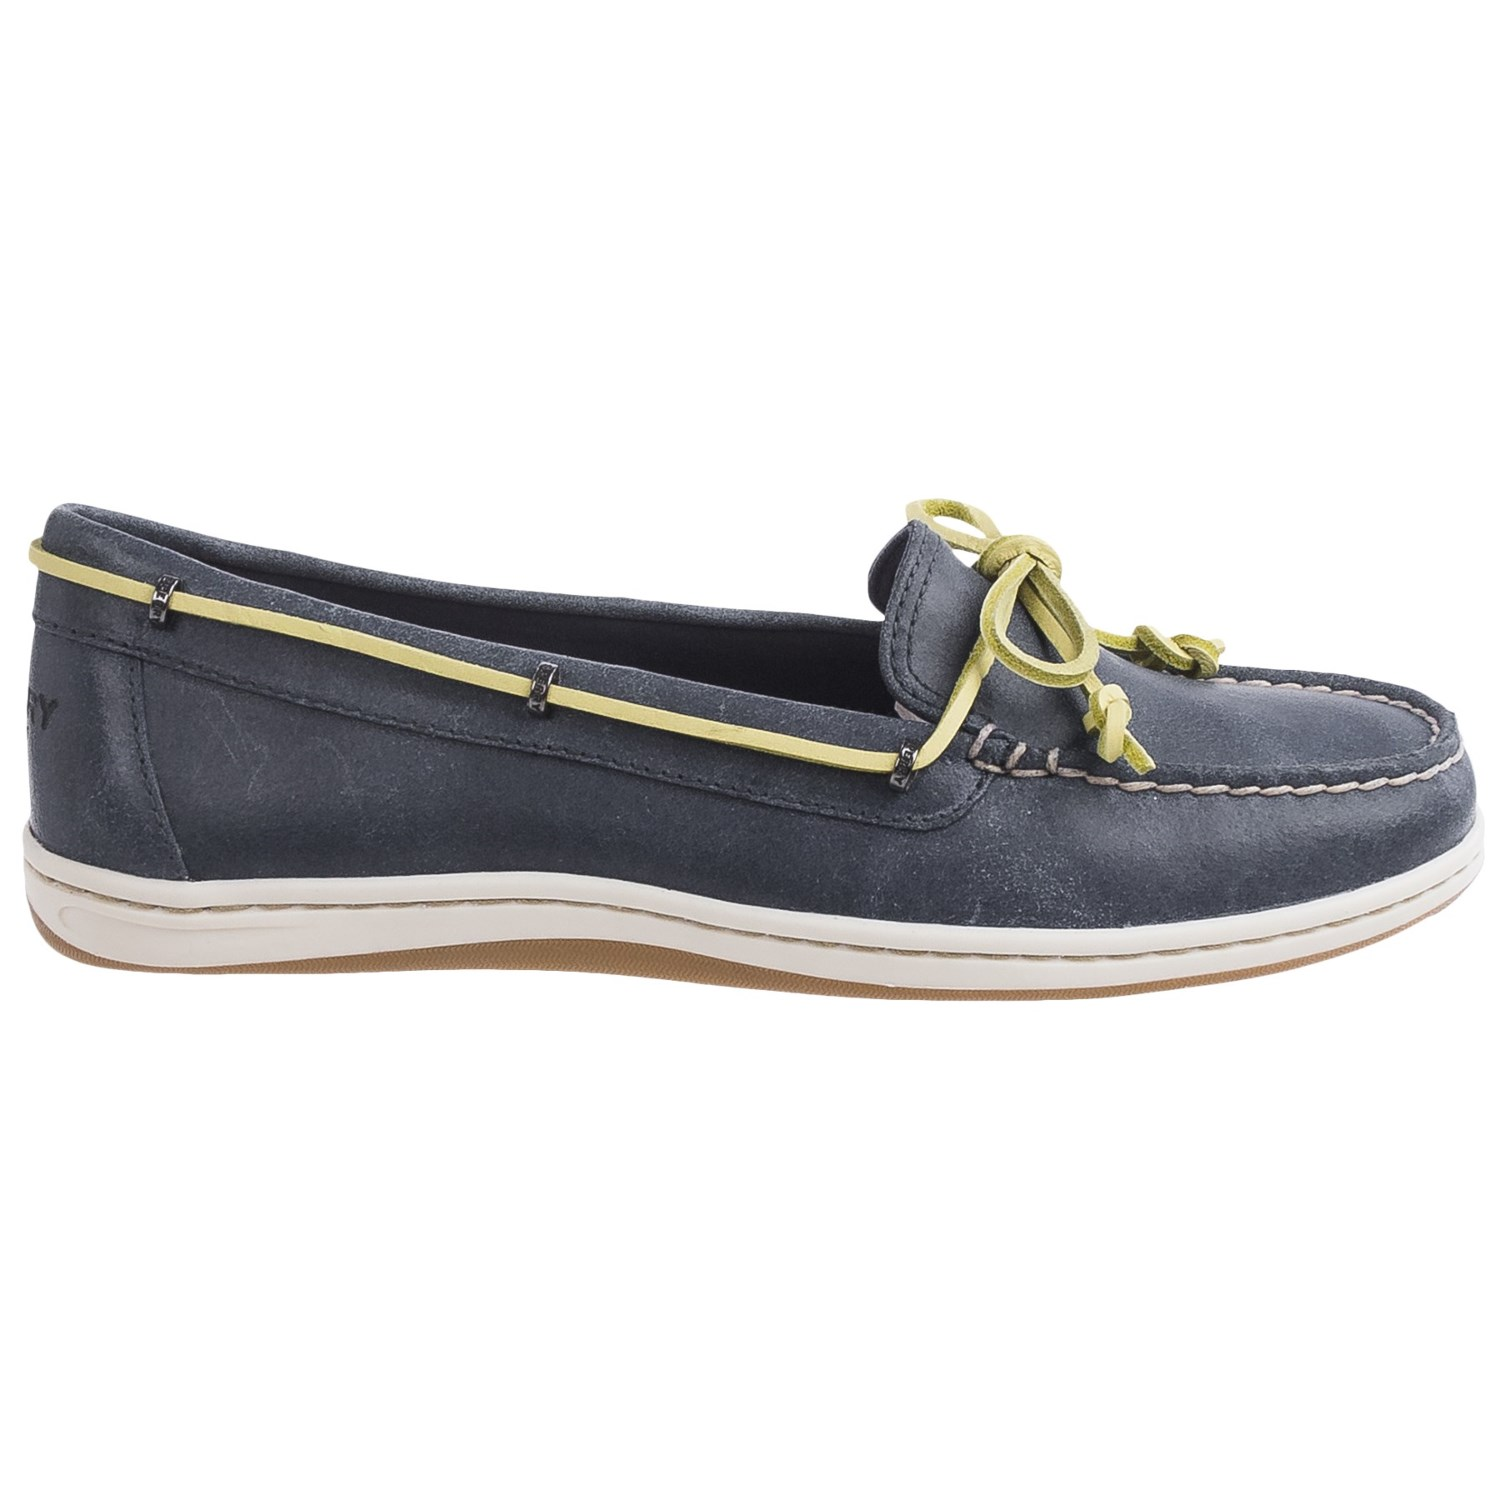 Sperry New Balance Boat Shoes